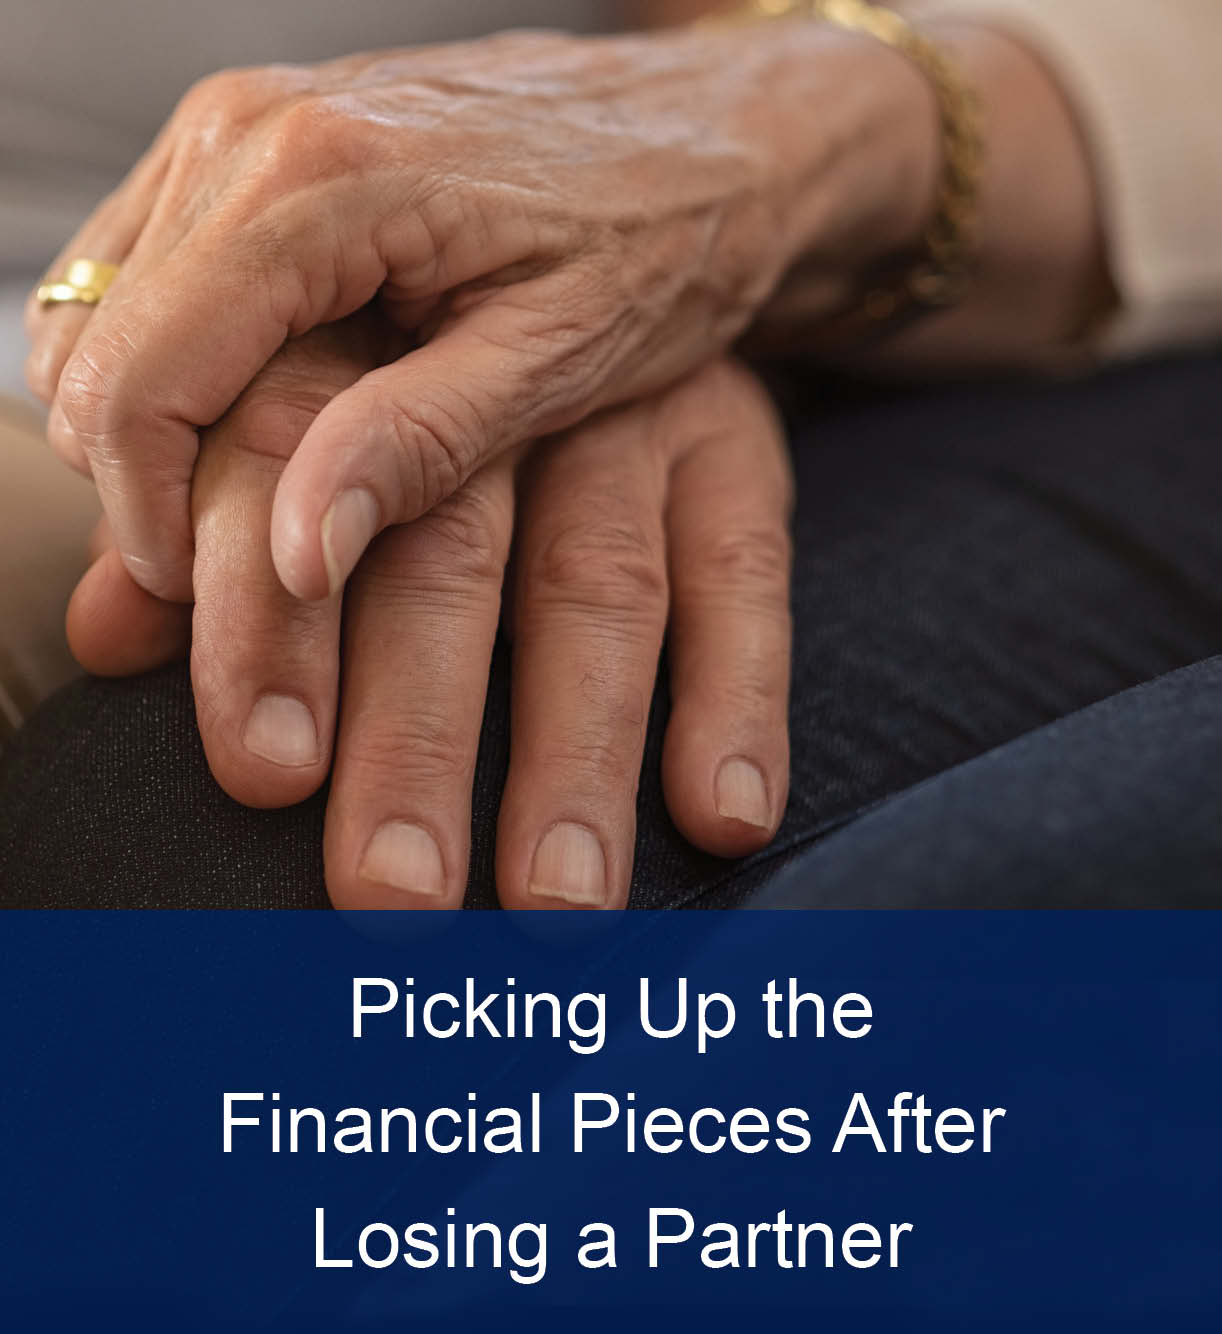 Picking Up the Financial Pieces After Losing a Spouse thumbnail image